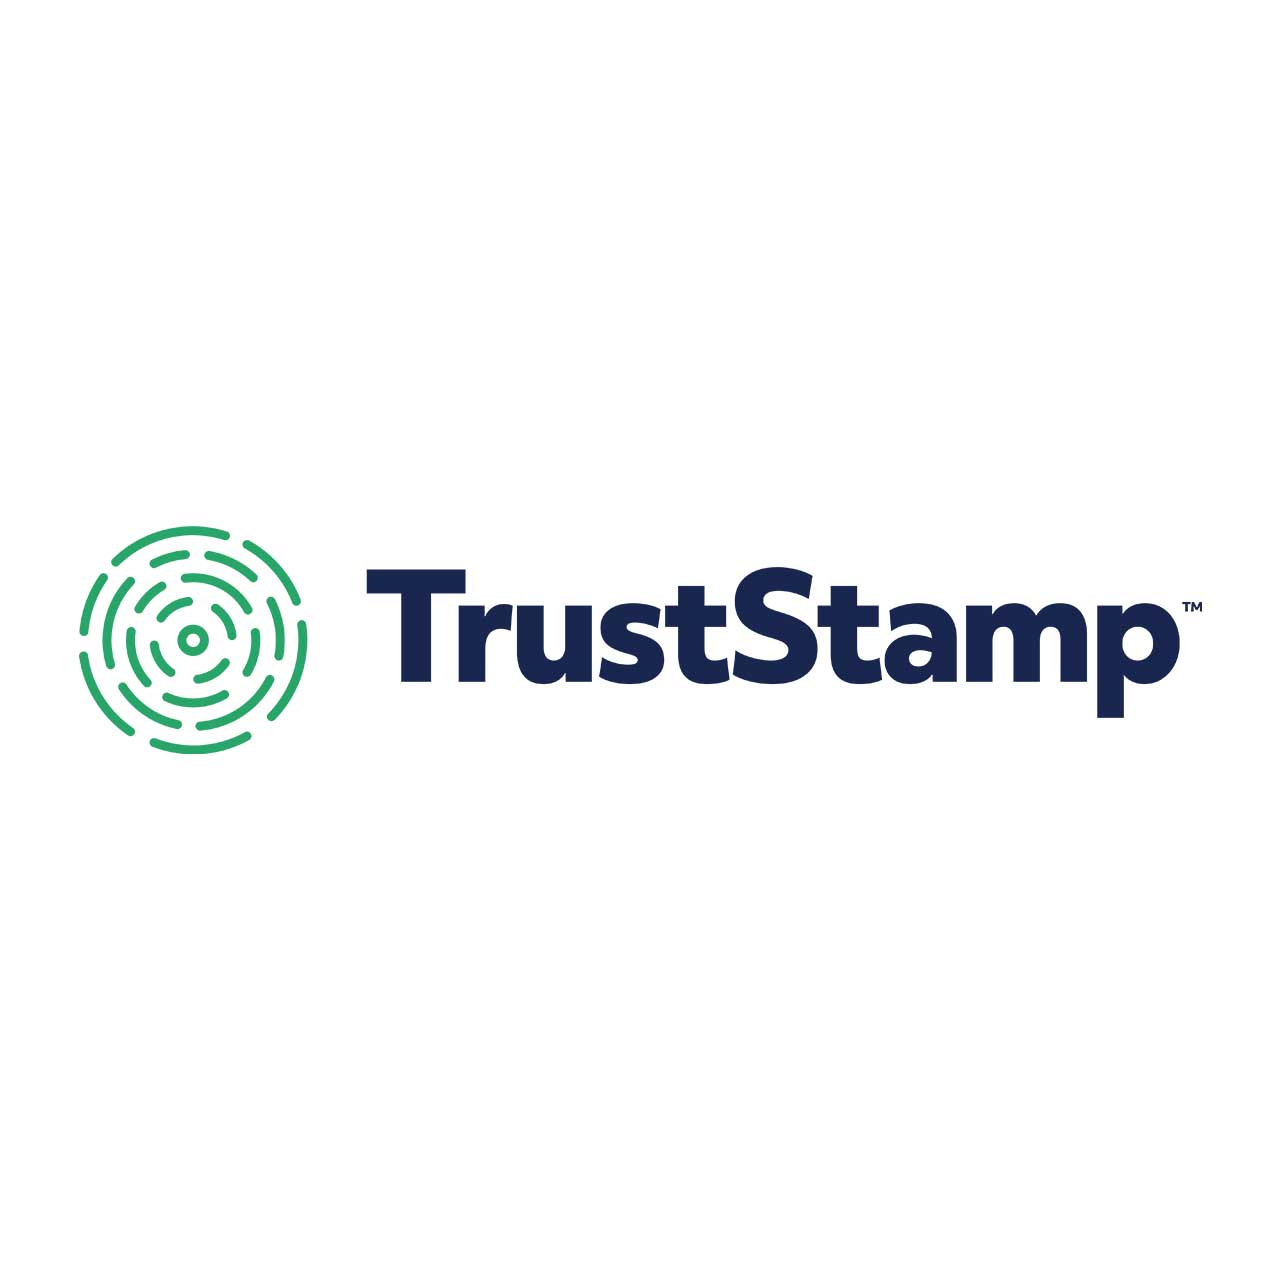 Trust Stamp Partners with Vital4 to take AML/KYC to the Next Level